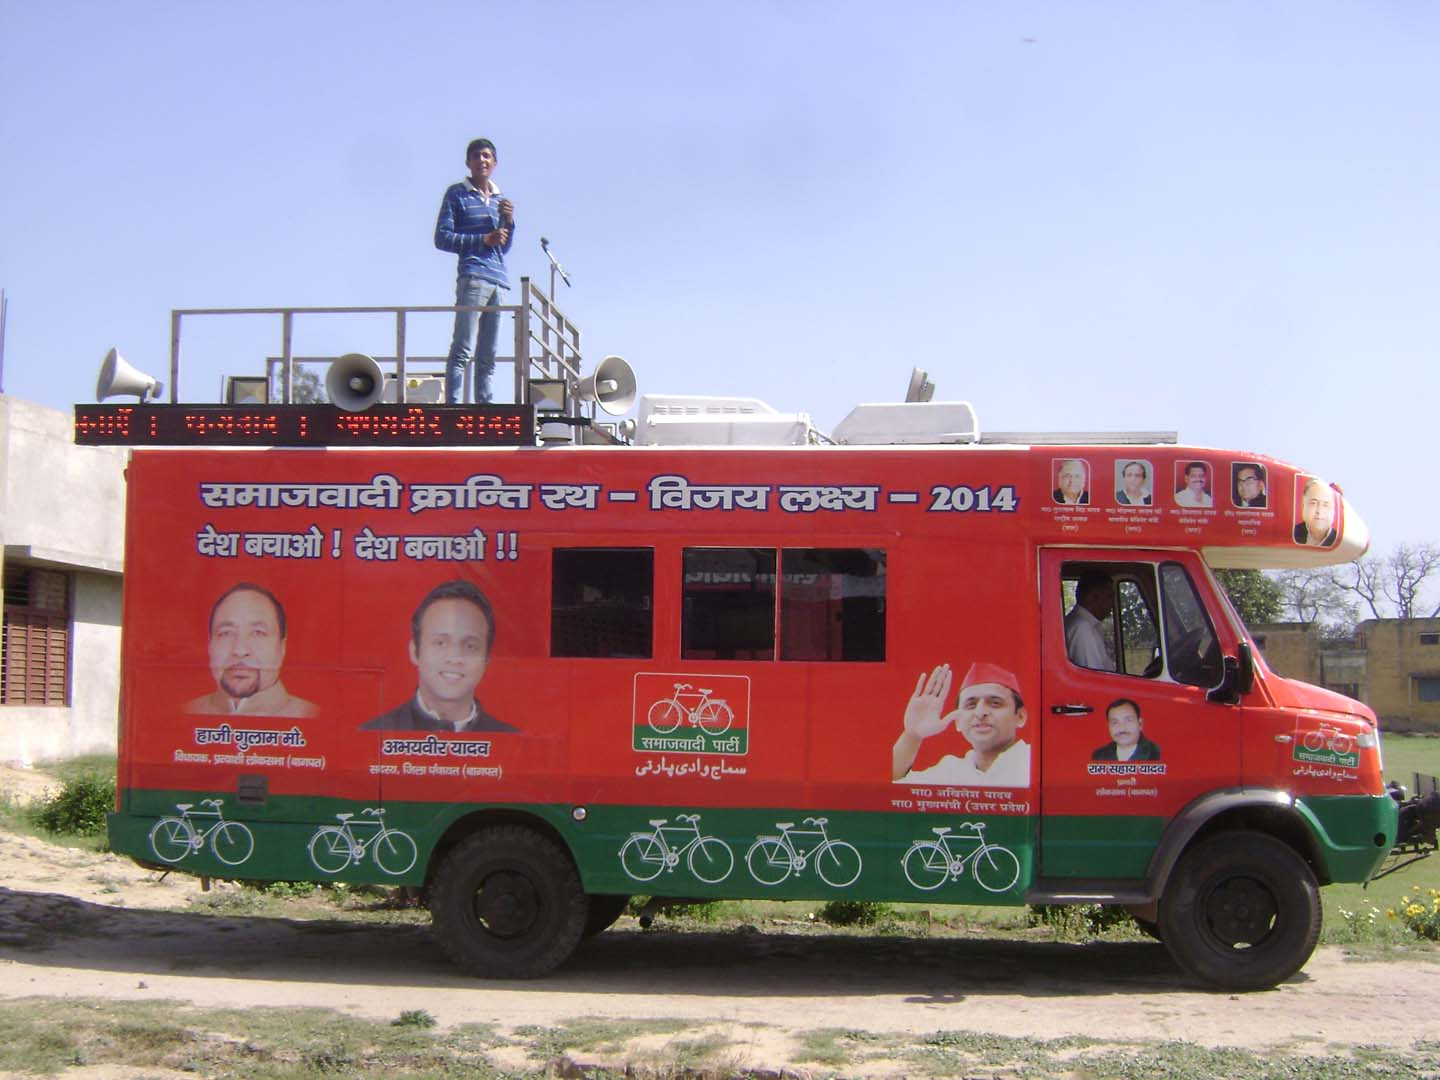 ELECTION RATH | Election campaign